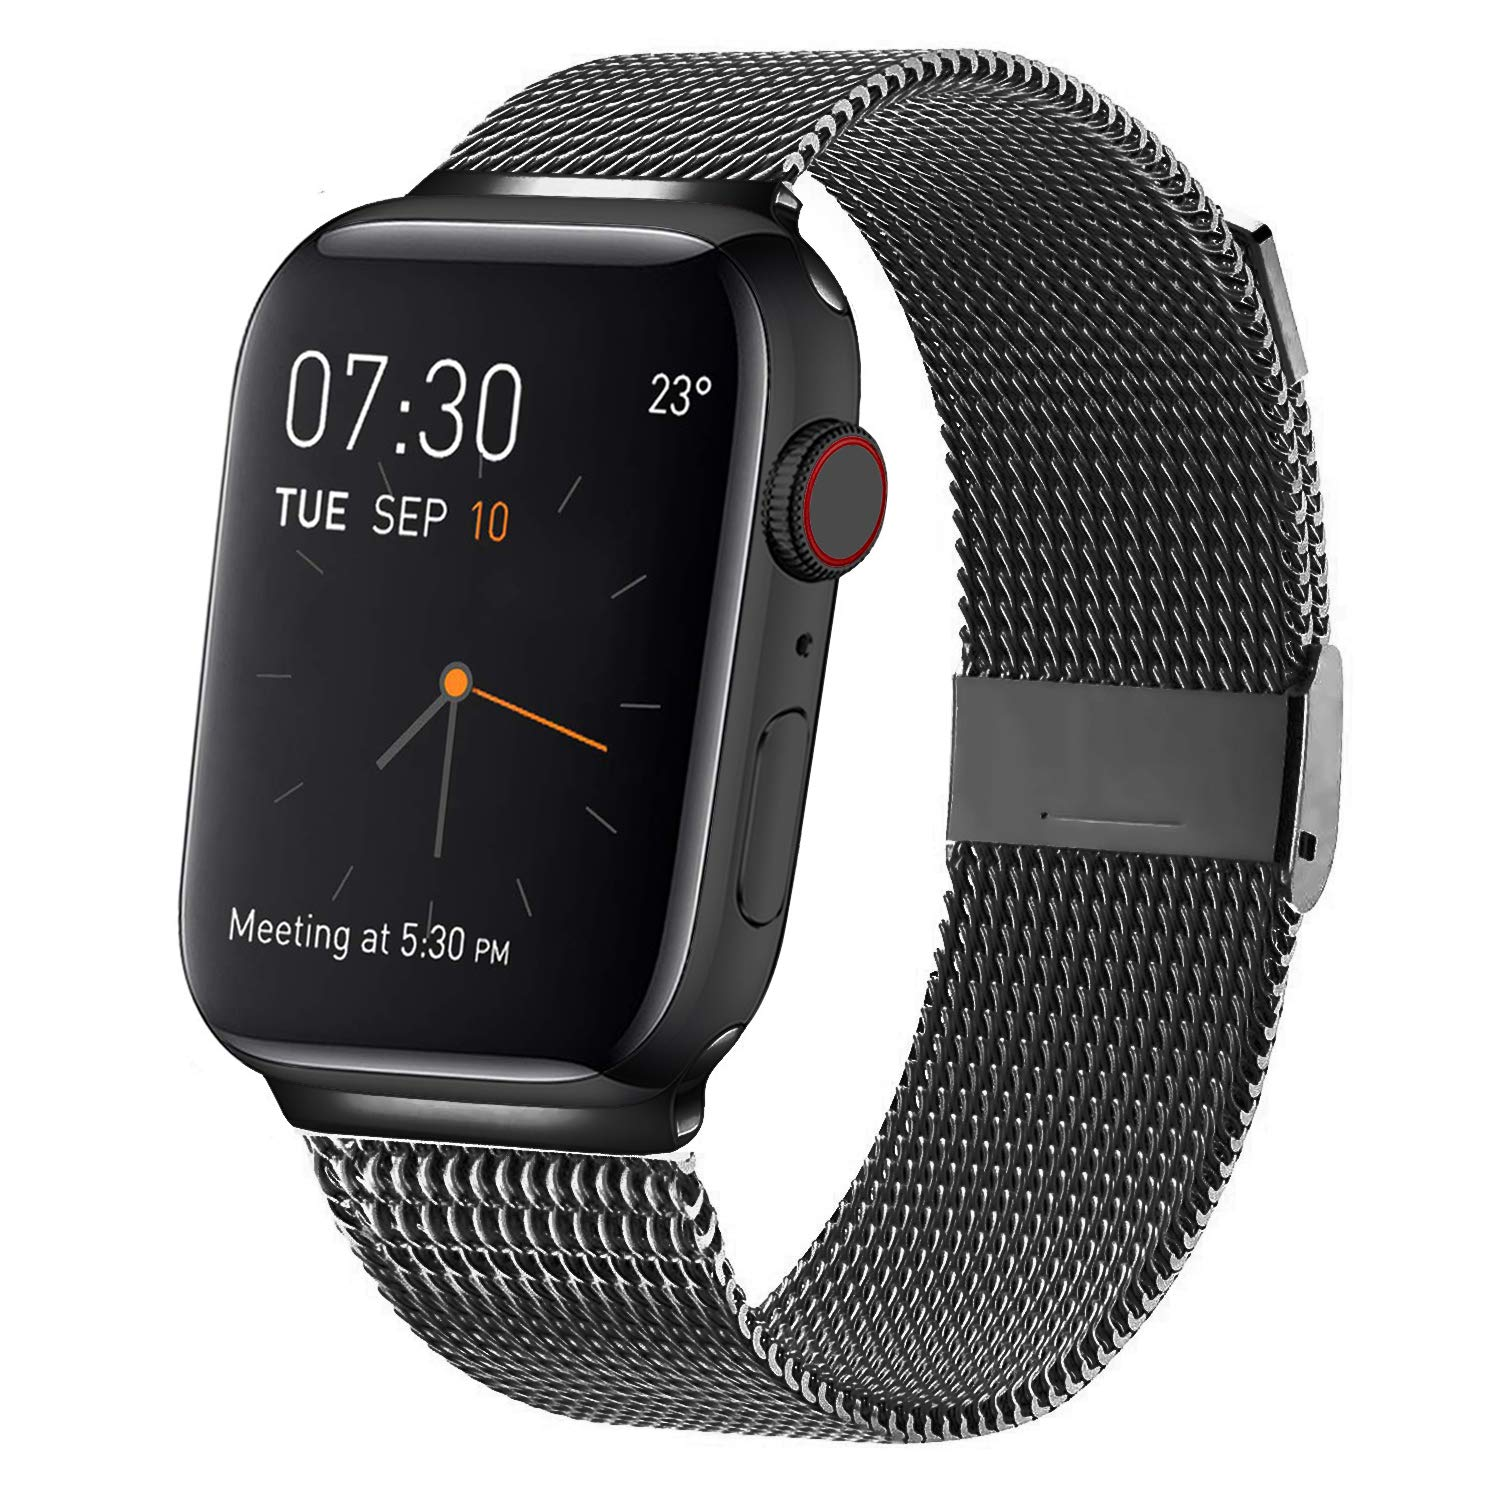 MCORS Compatible with Apple Watch Band 44mm 42mm,Stainless Steel Mesh Metal Loop with Adjustable Magnetic Closure Replacement Bands for Iwatch Series 4 3 2 1 Black by MCORS